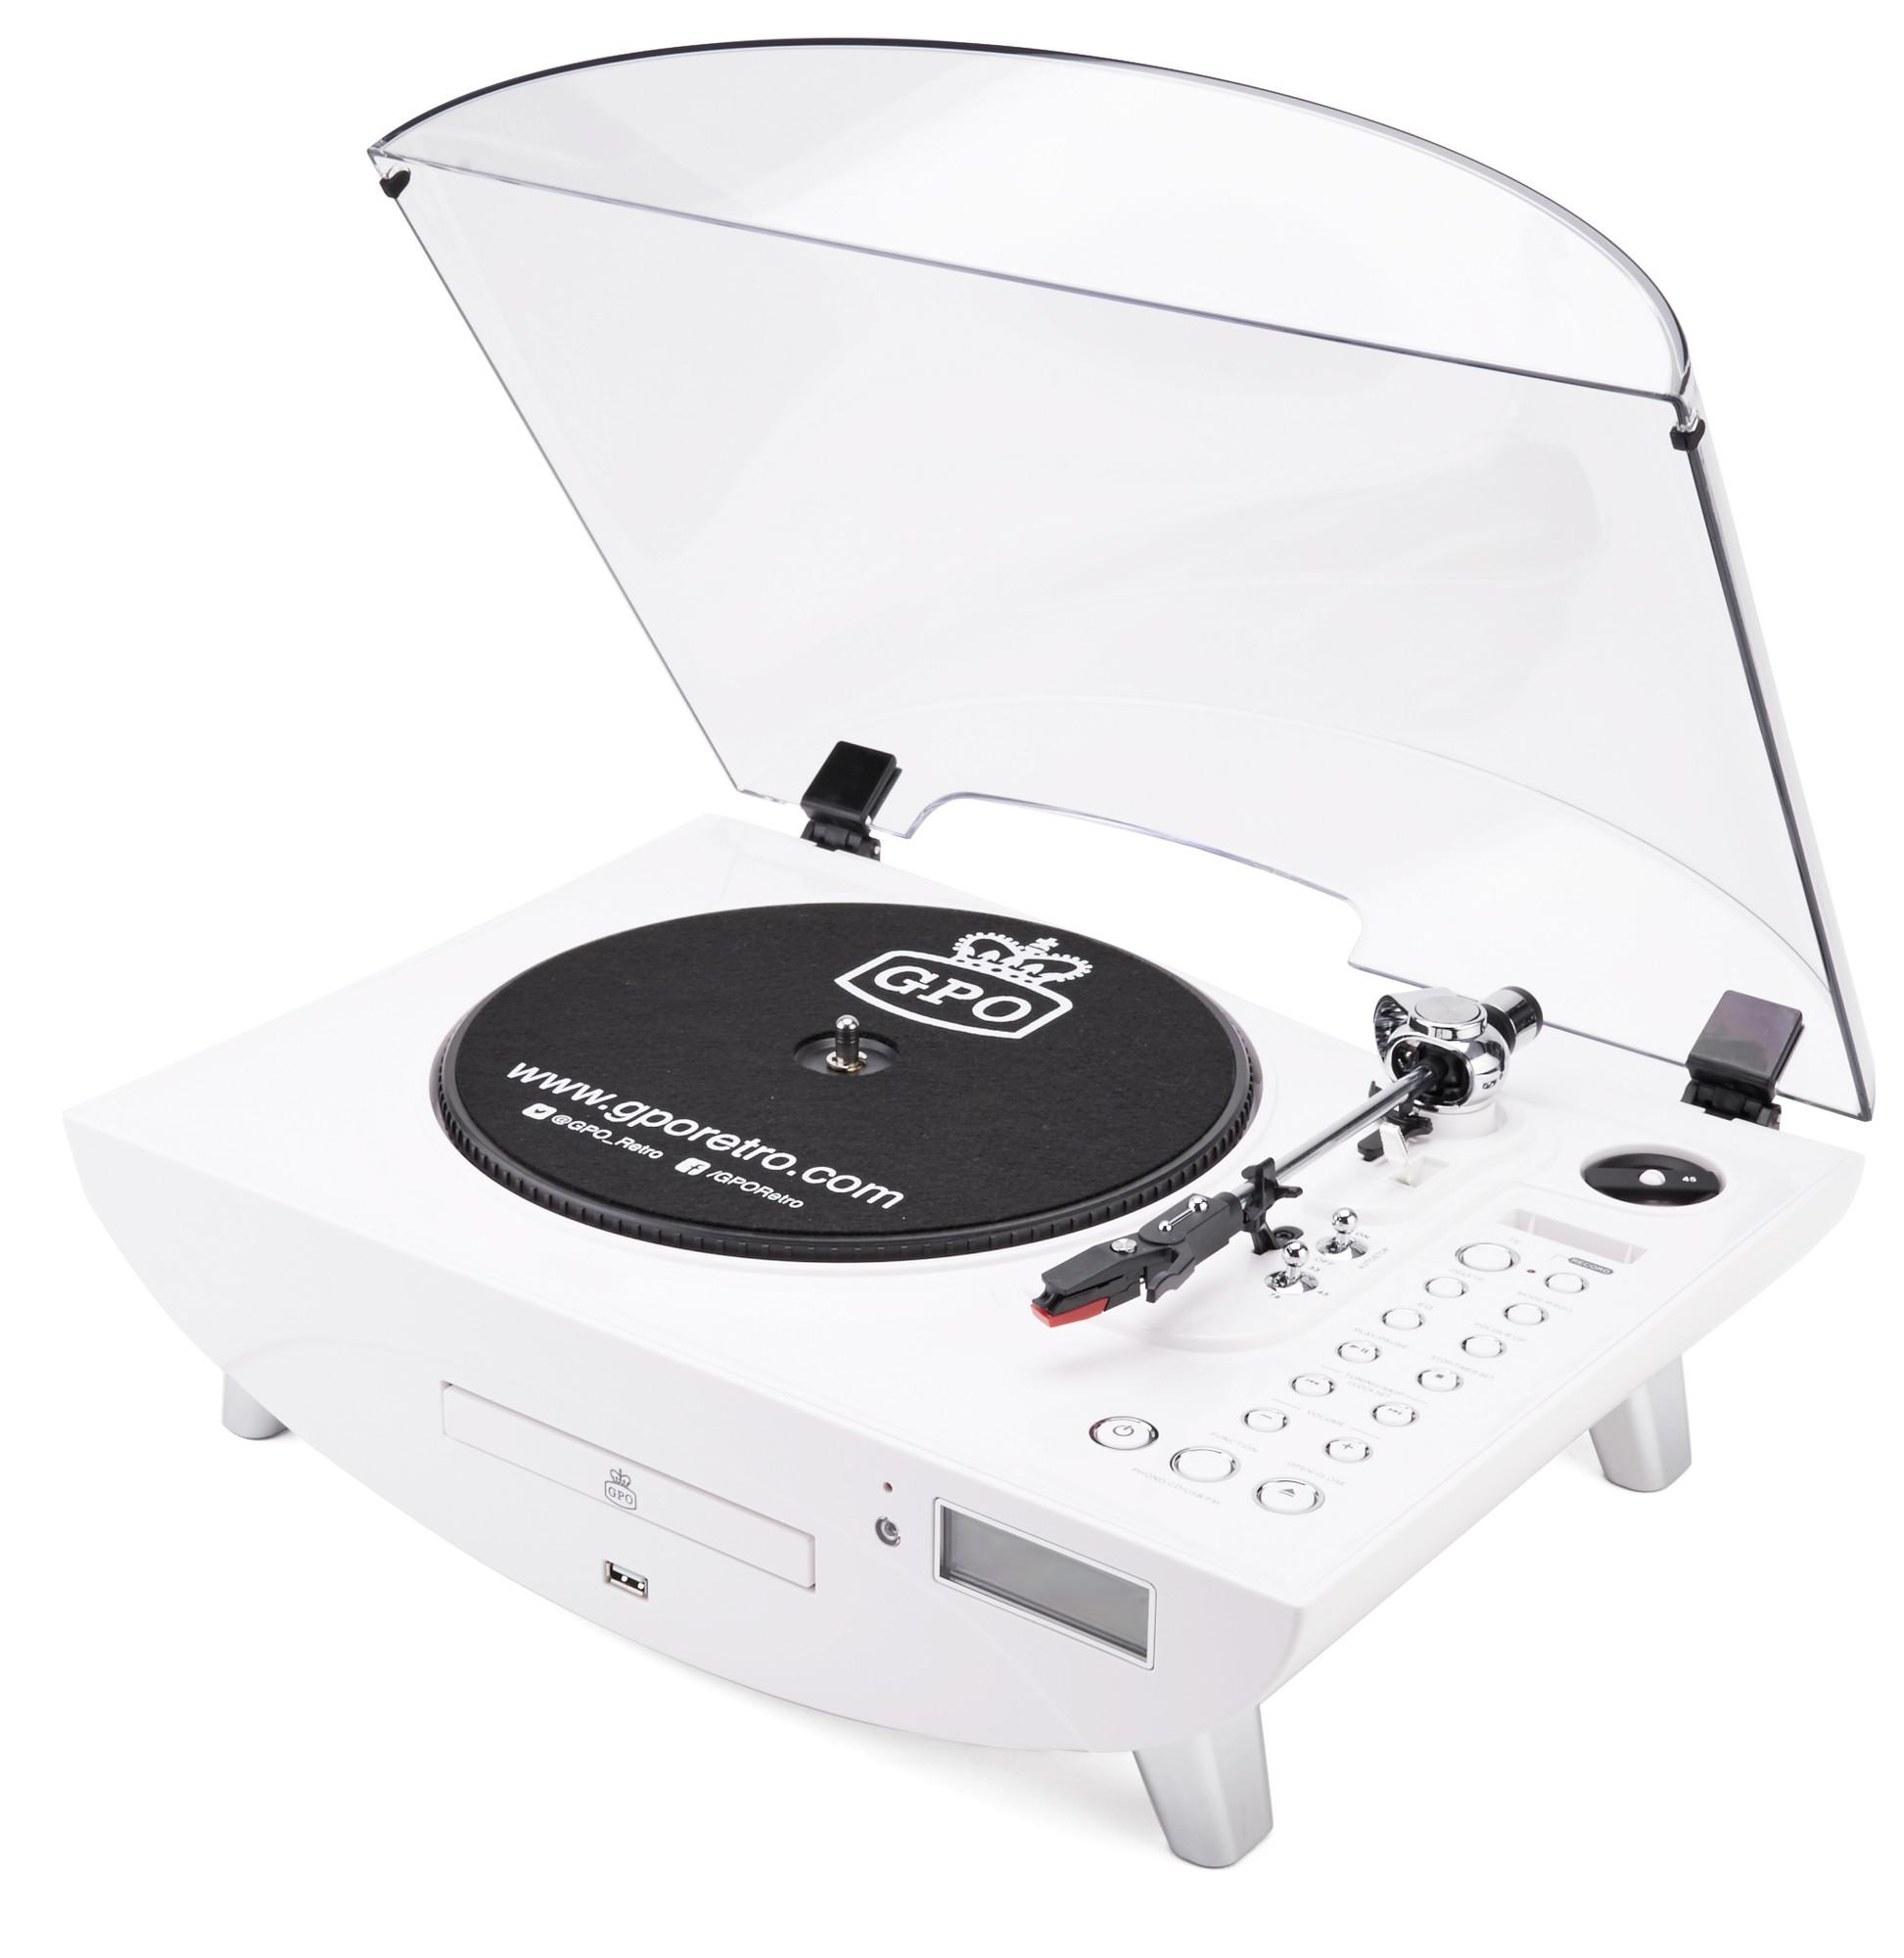 Amazing Gpo Jive Record Player Retro 3 Speed Vinyl Turntable Cd Fm Radio Mp3 Usb Speakers White Pabps2019 Chair Design Images Pabps2019Com